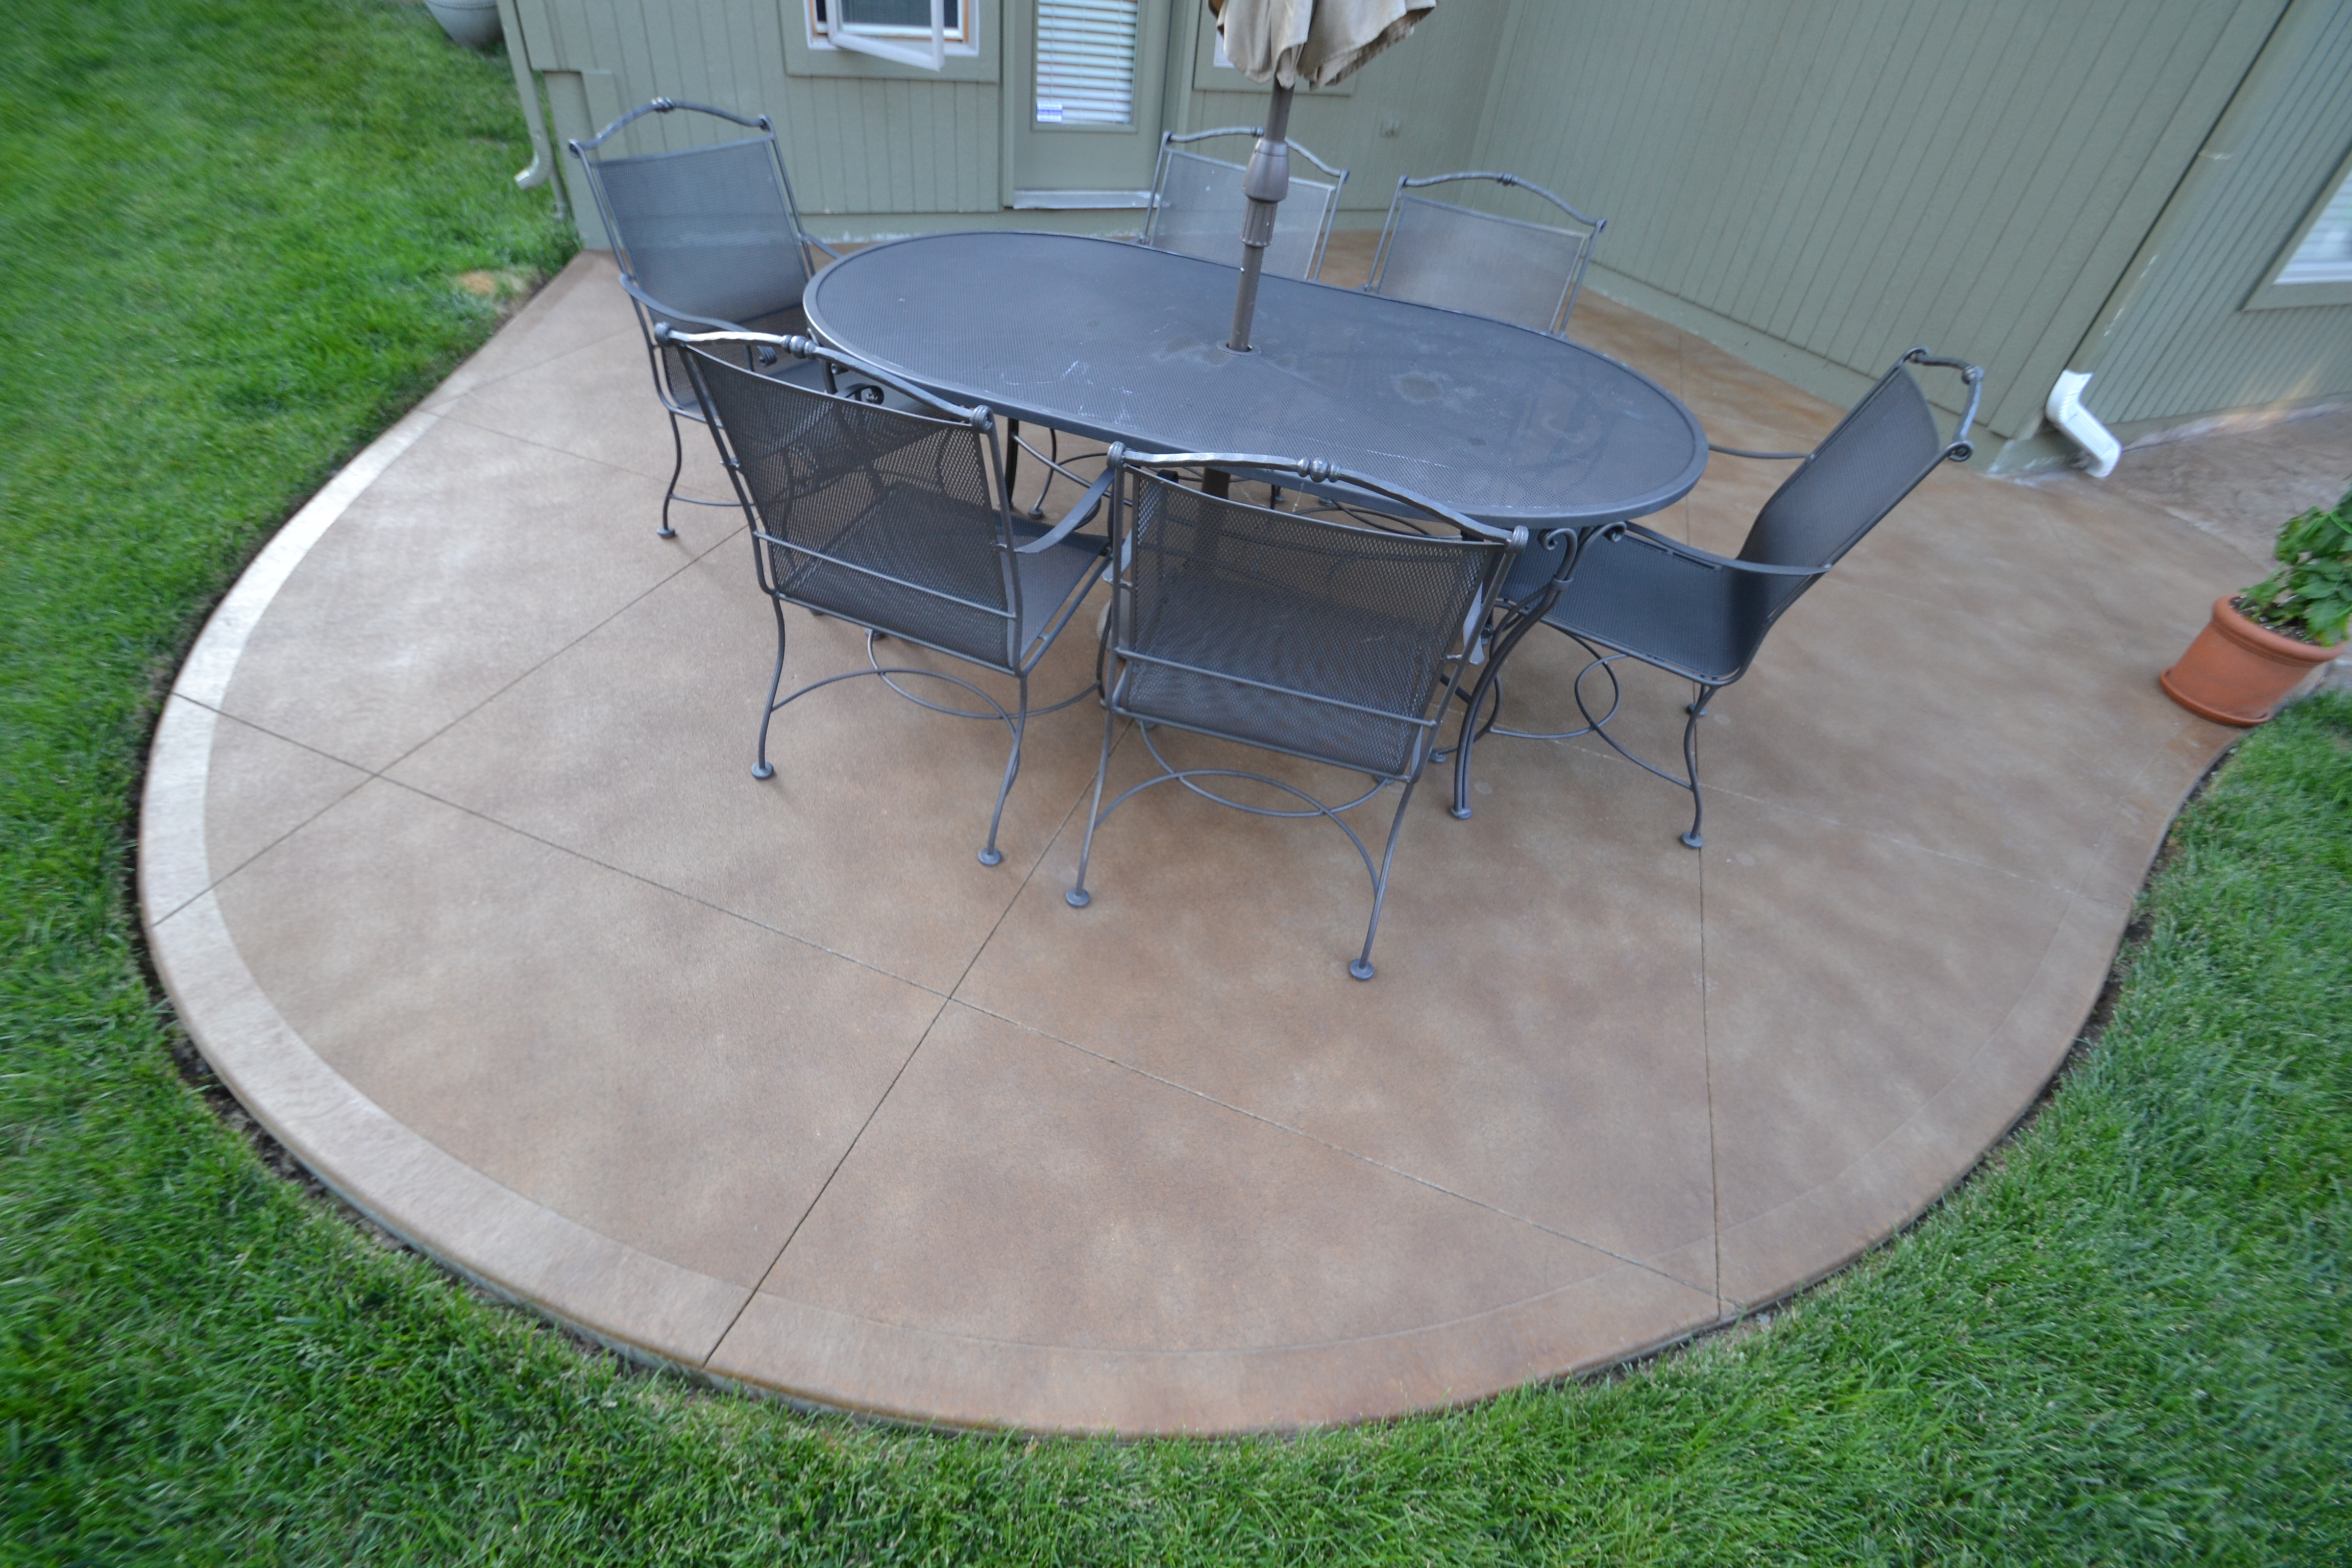 Aesthetic Concrete Designs created this custom concrete patio.